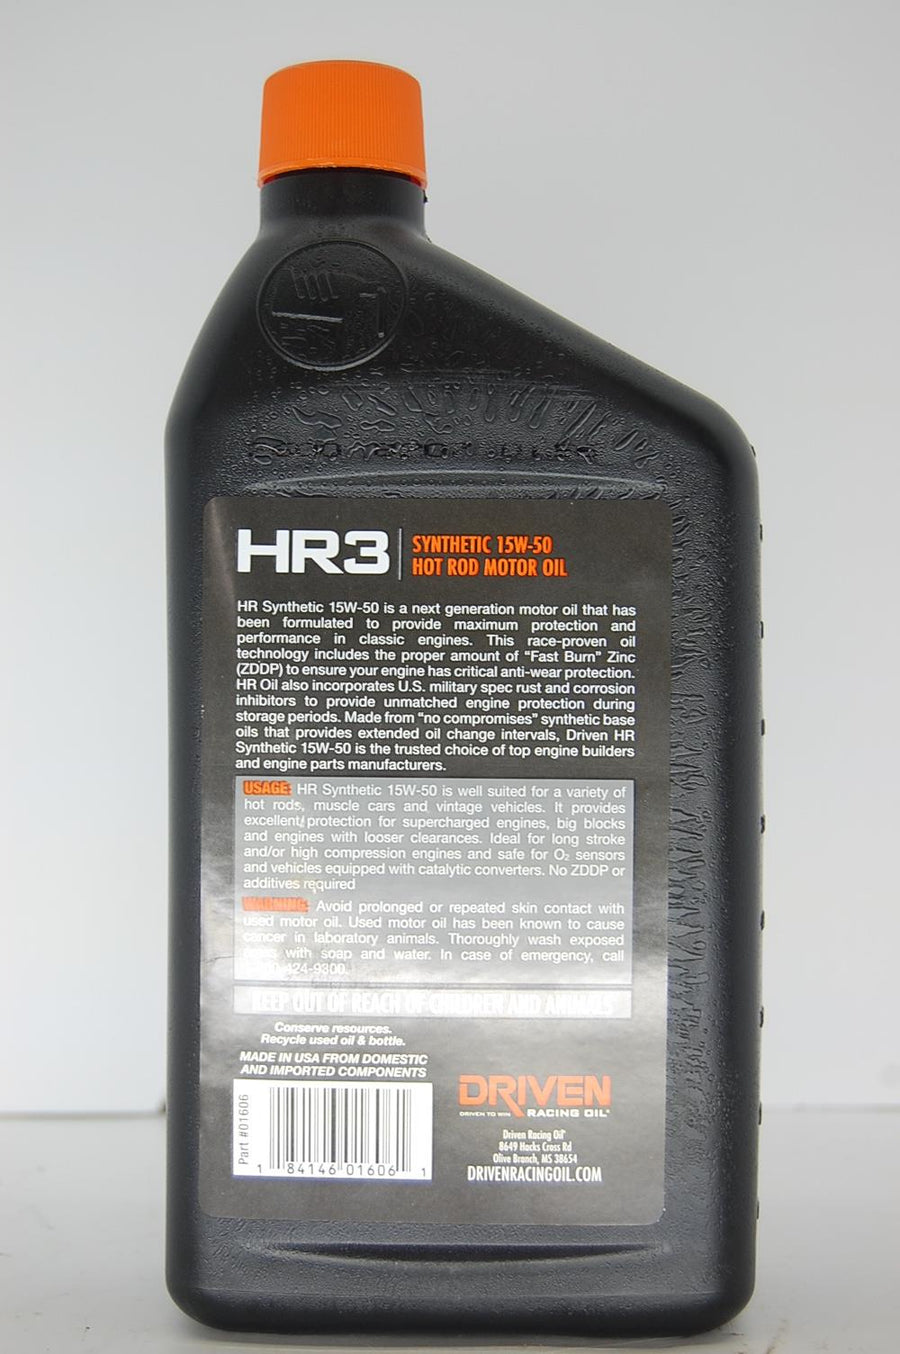 Driven HR3 Synthetic 15W-50 Hot Rod Motor Racing Oil 1 Quart